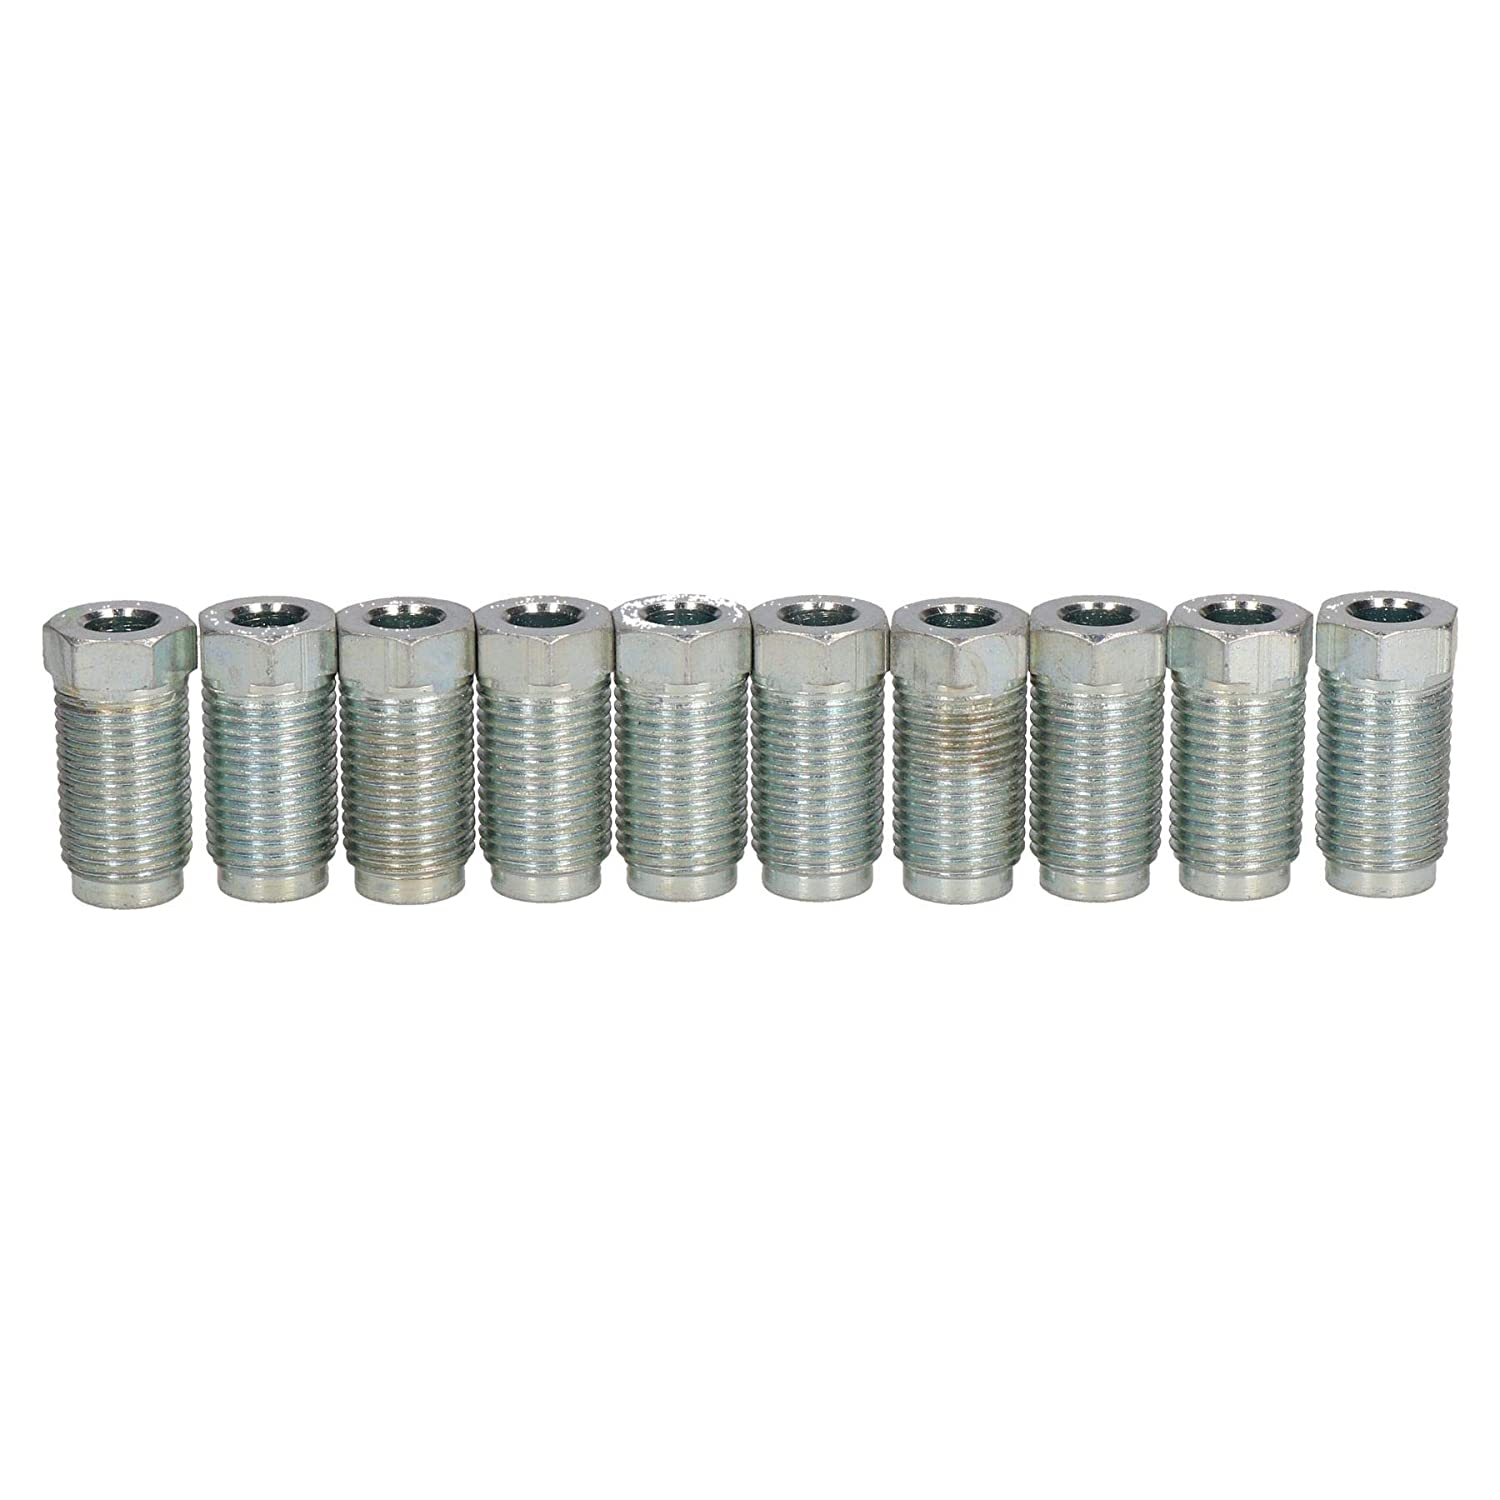 AB Tools-Bond Long Steel Male Brake Pipe Union Fittings 1//2 x 20 UNF for 1//4 Brake Pipe 10pc